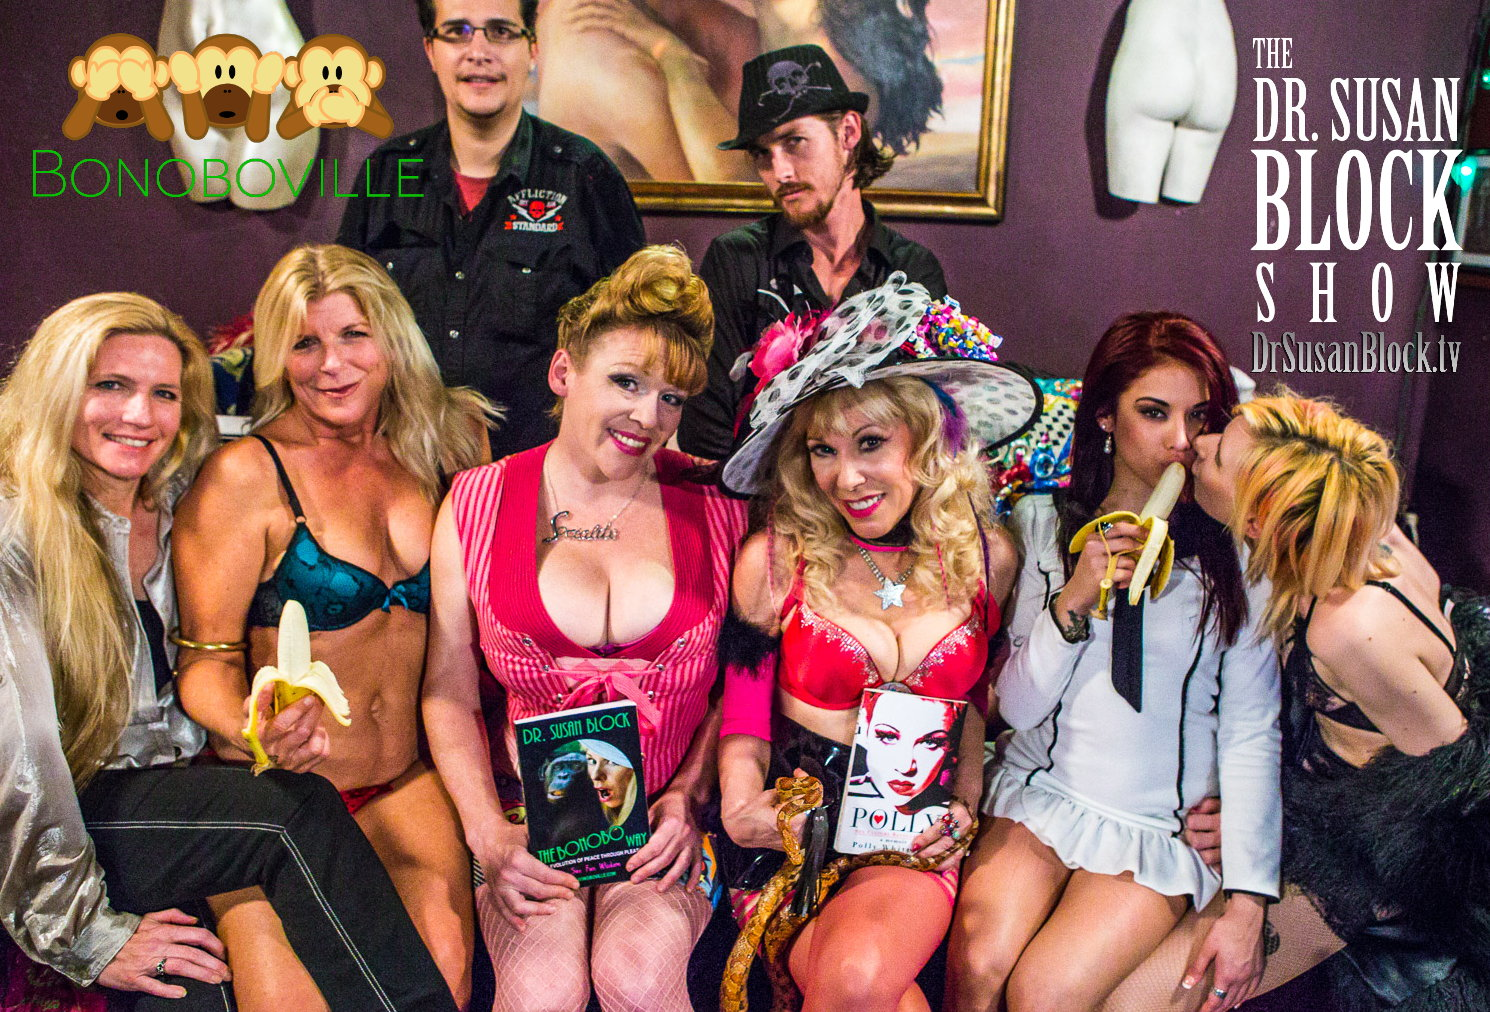 Tammie Parrott, Chelsea Bonobo,  Polly Superstar, Dr. Susan Block with Snake Eve, Onyx Muse, Shadow Cumbie. Row 2: Master D, Dark Phoenix